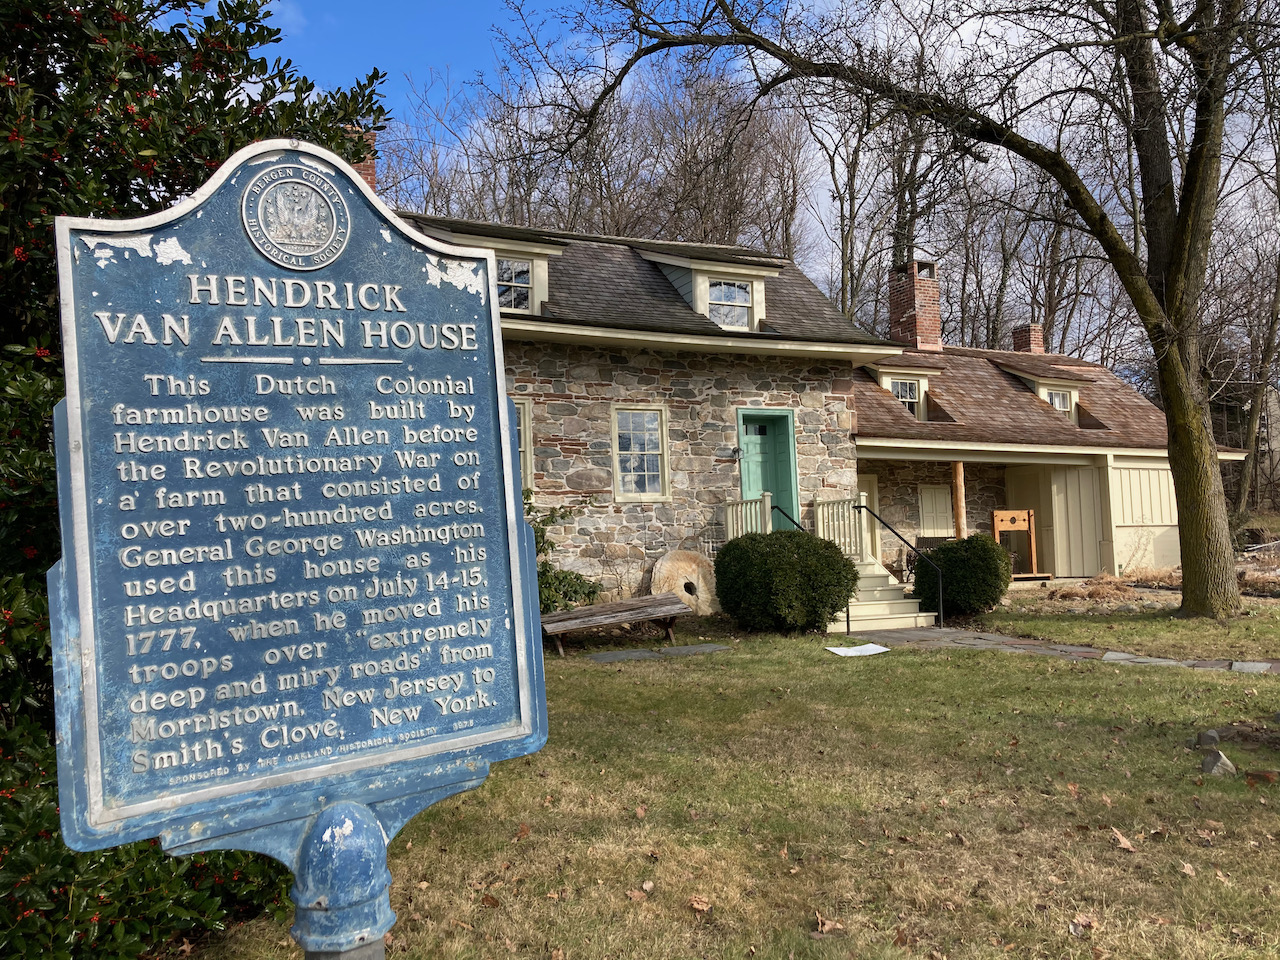 Exterior of Van Allen House, which informational sign on left of image.